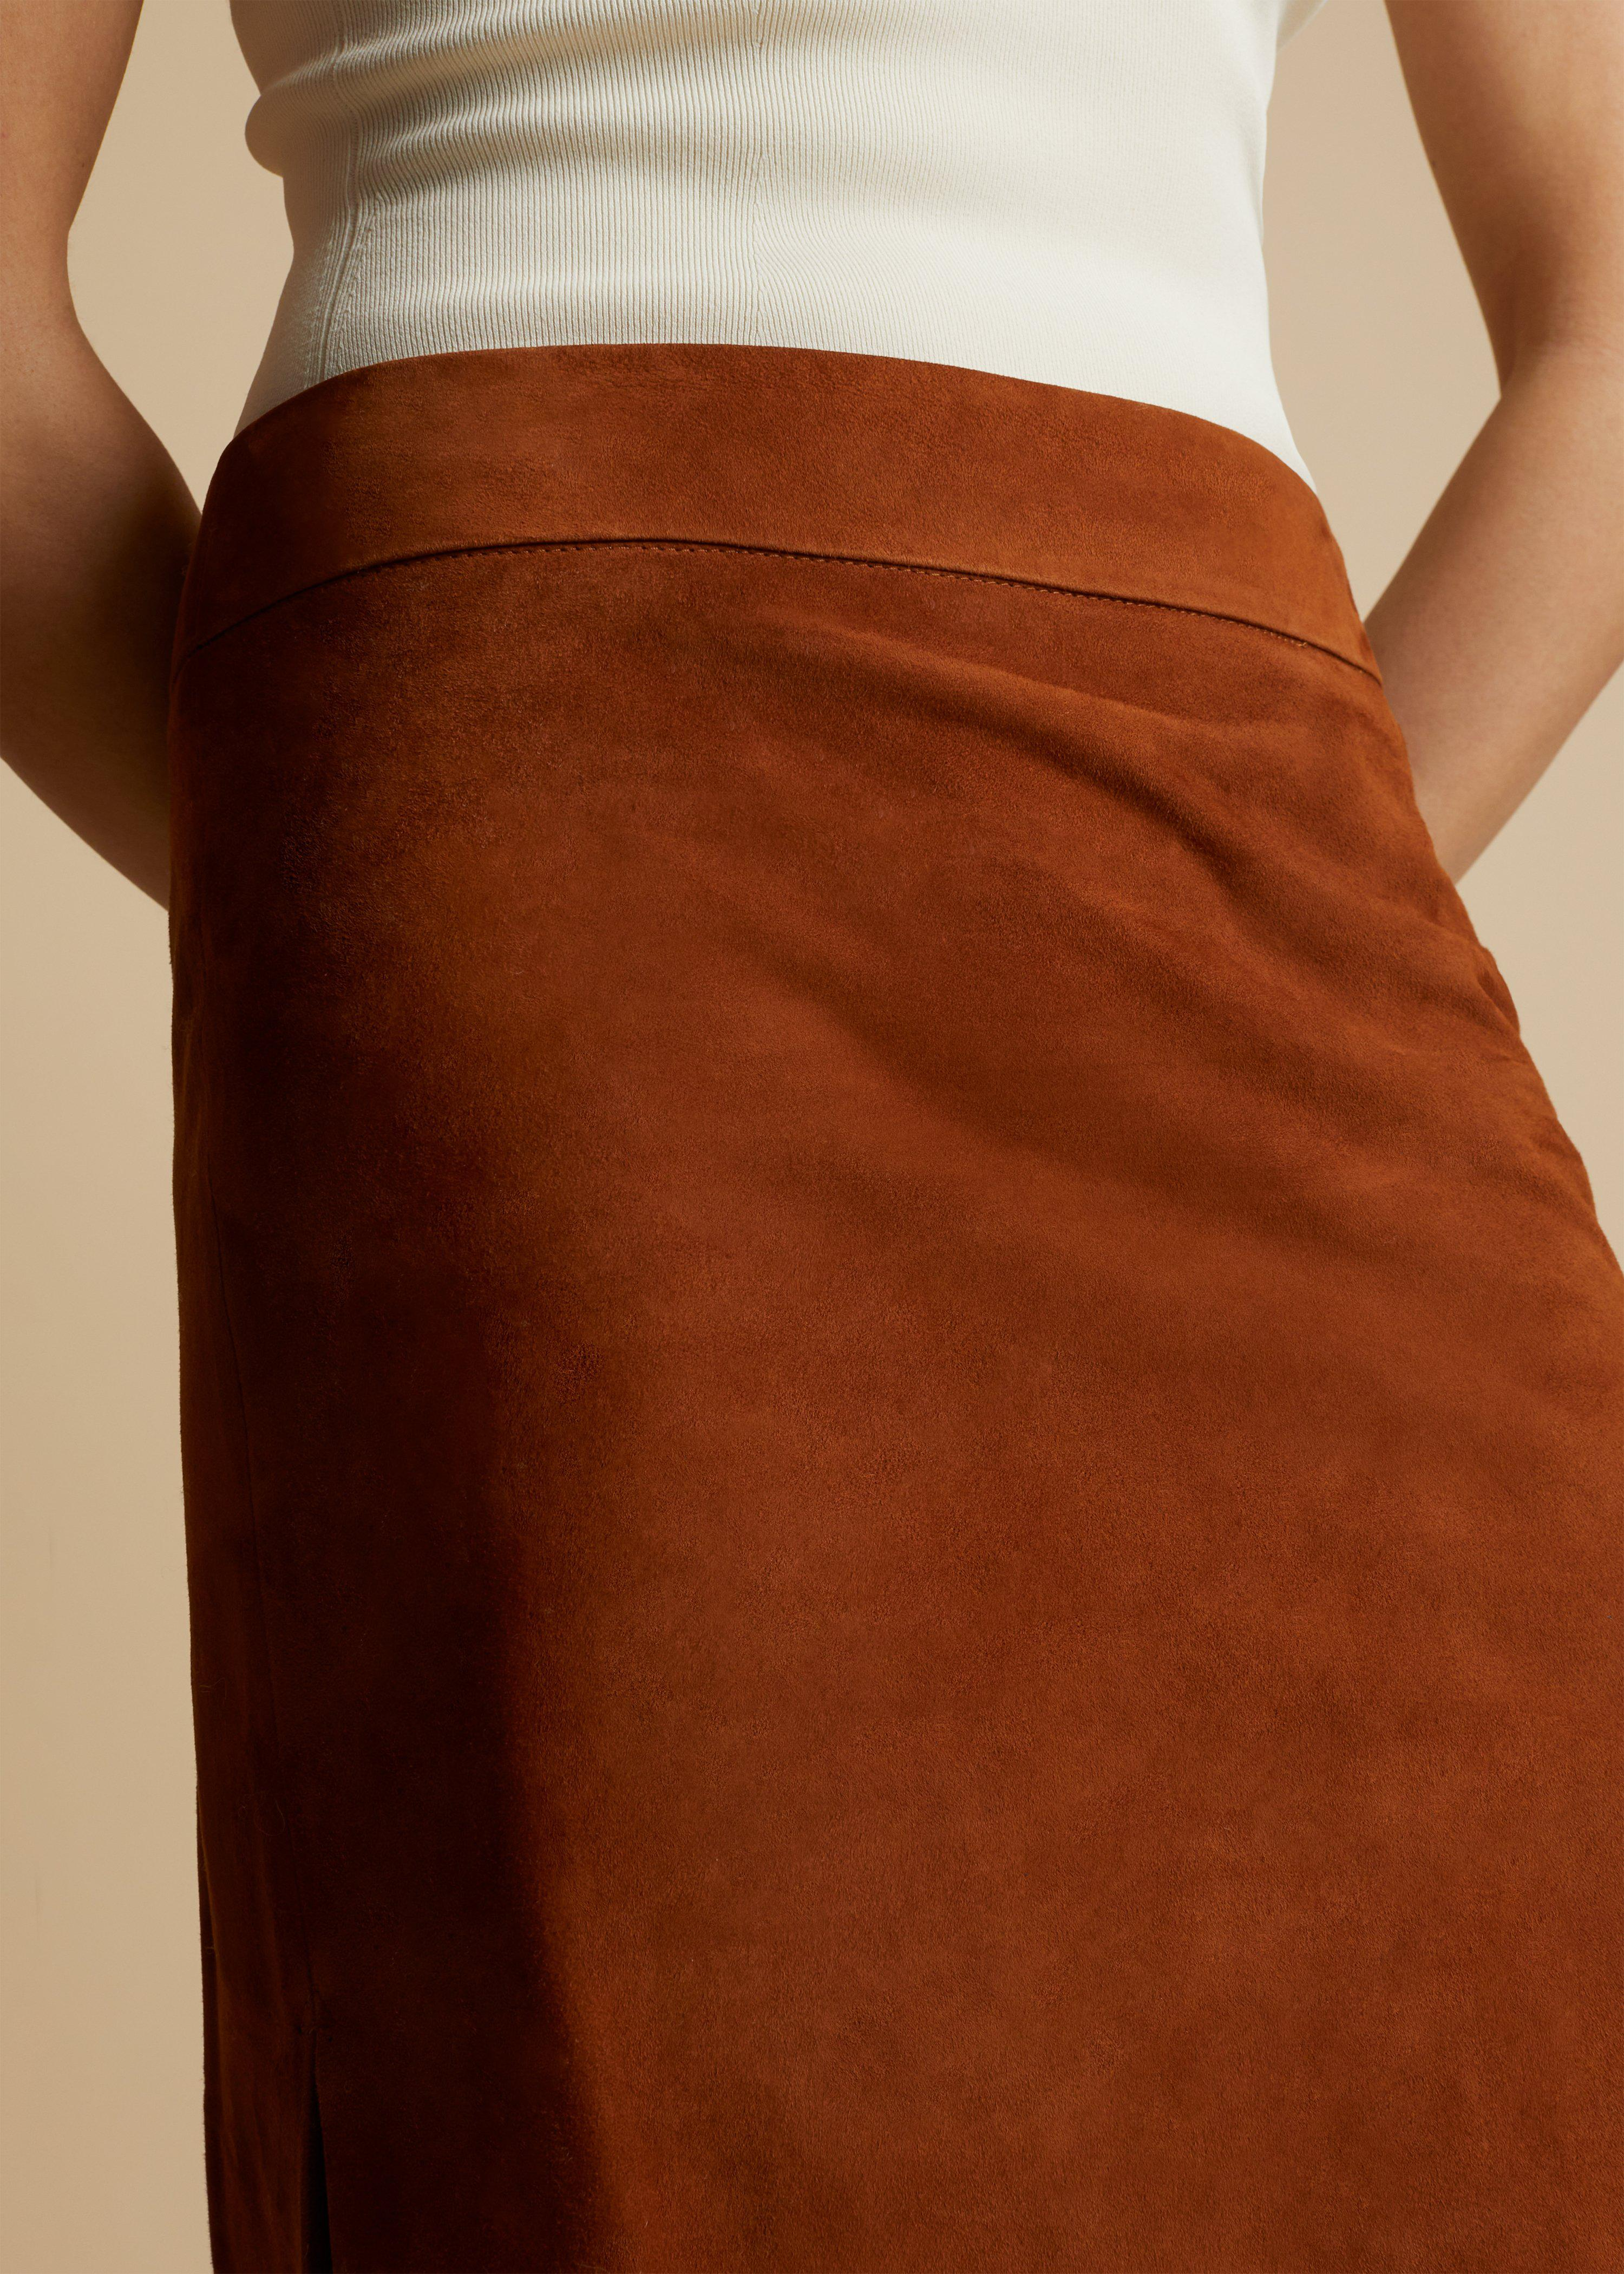 The Myla Skirt in Chestnut Suede 4